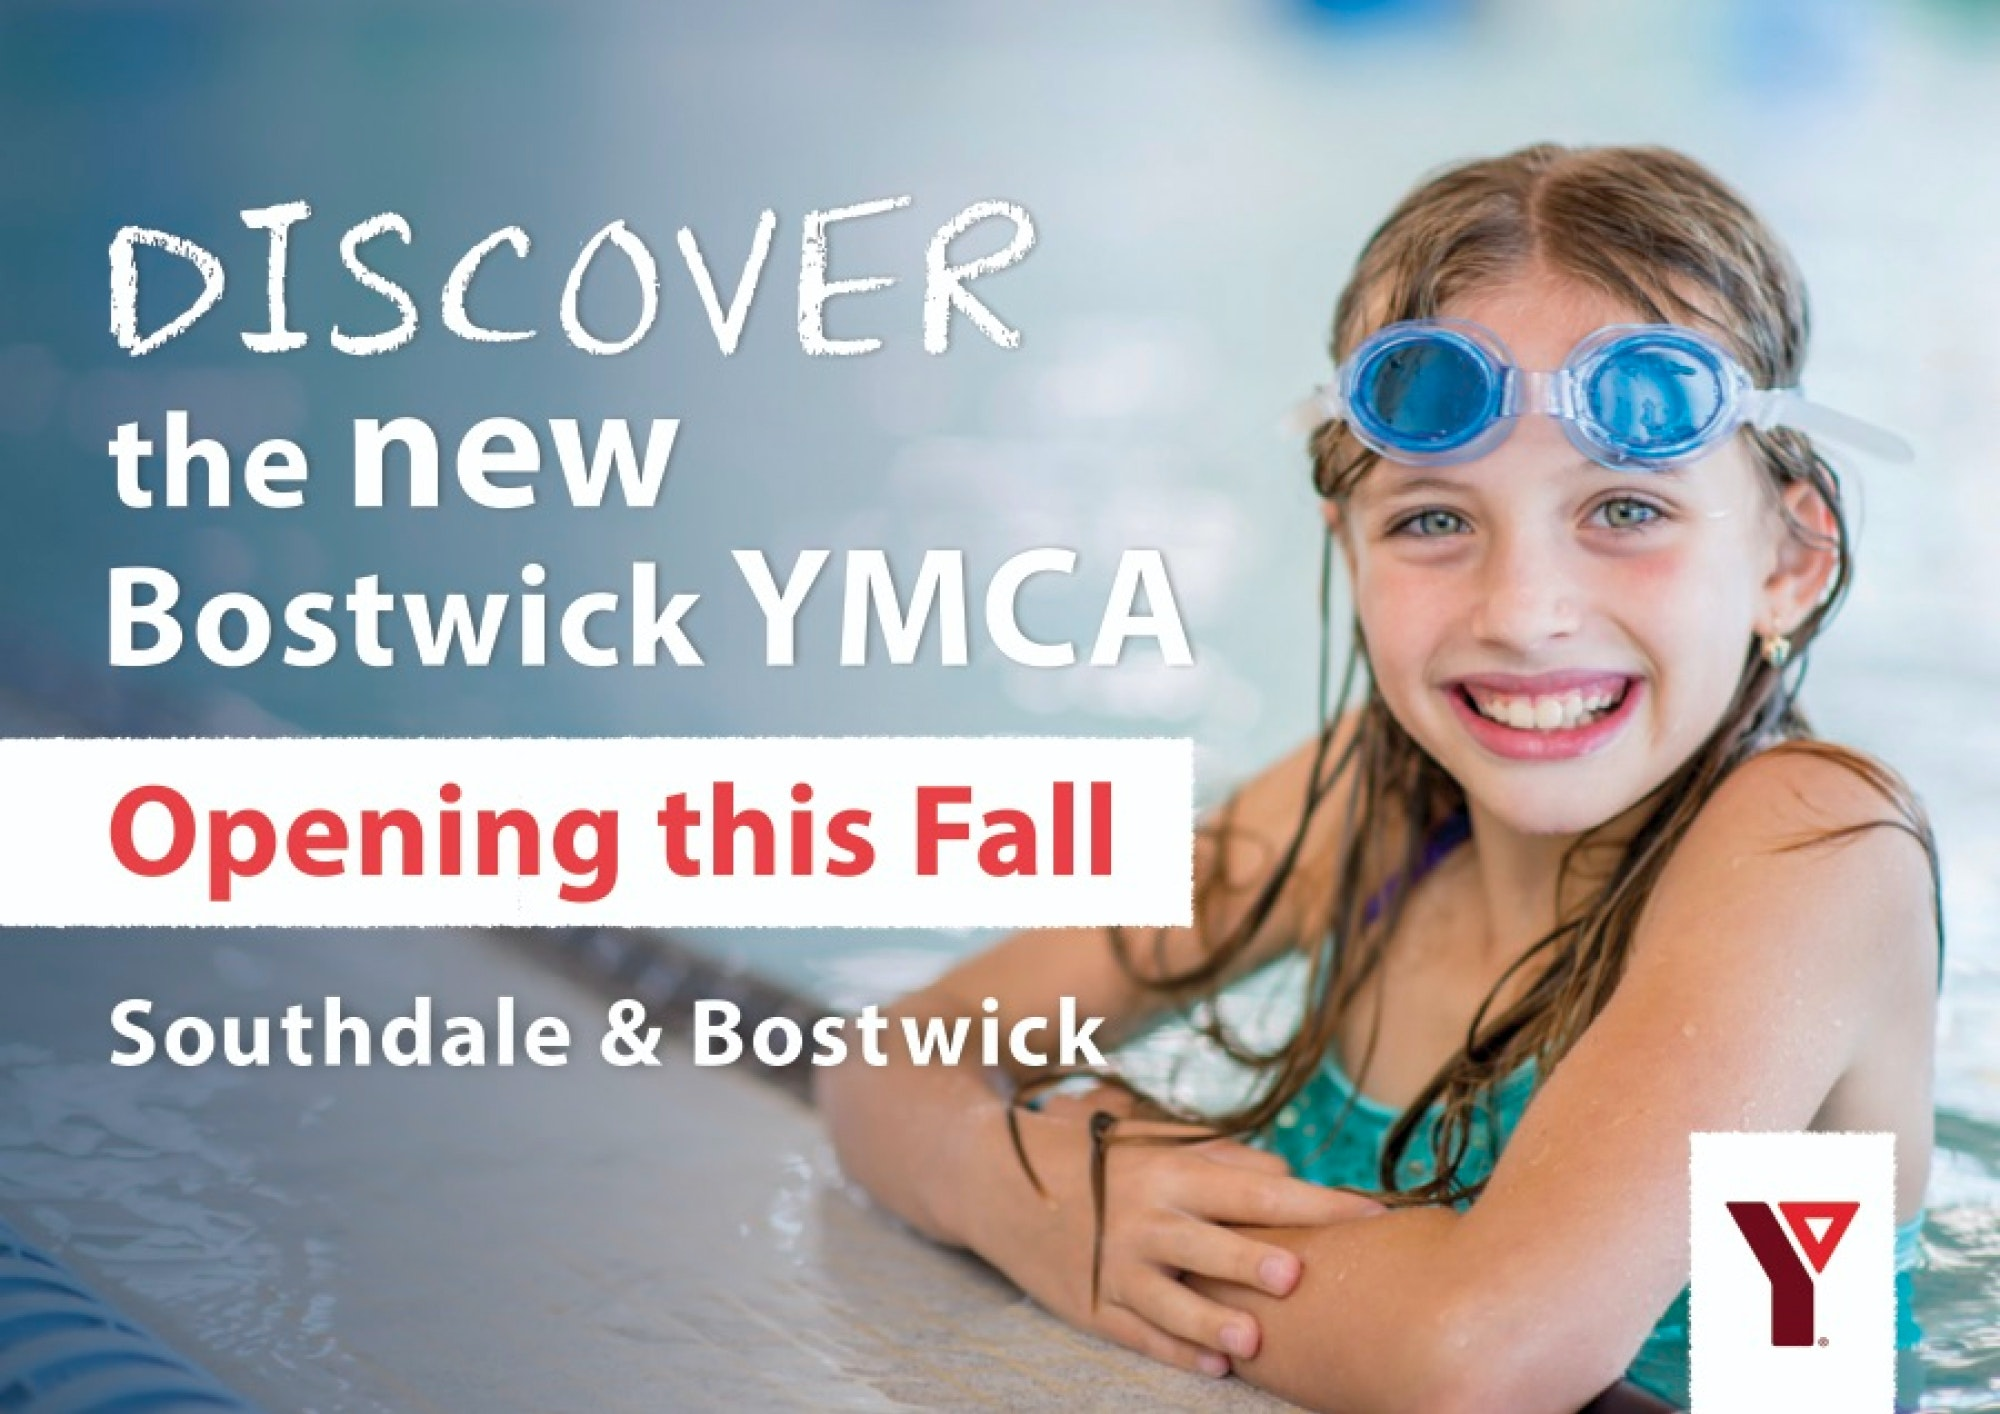 A postcard advertising the new Bostwick YMCA